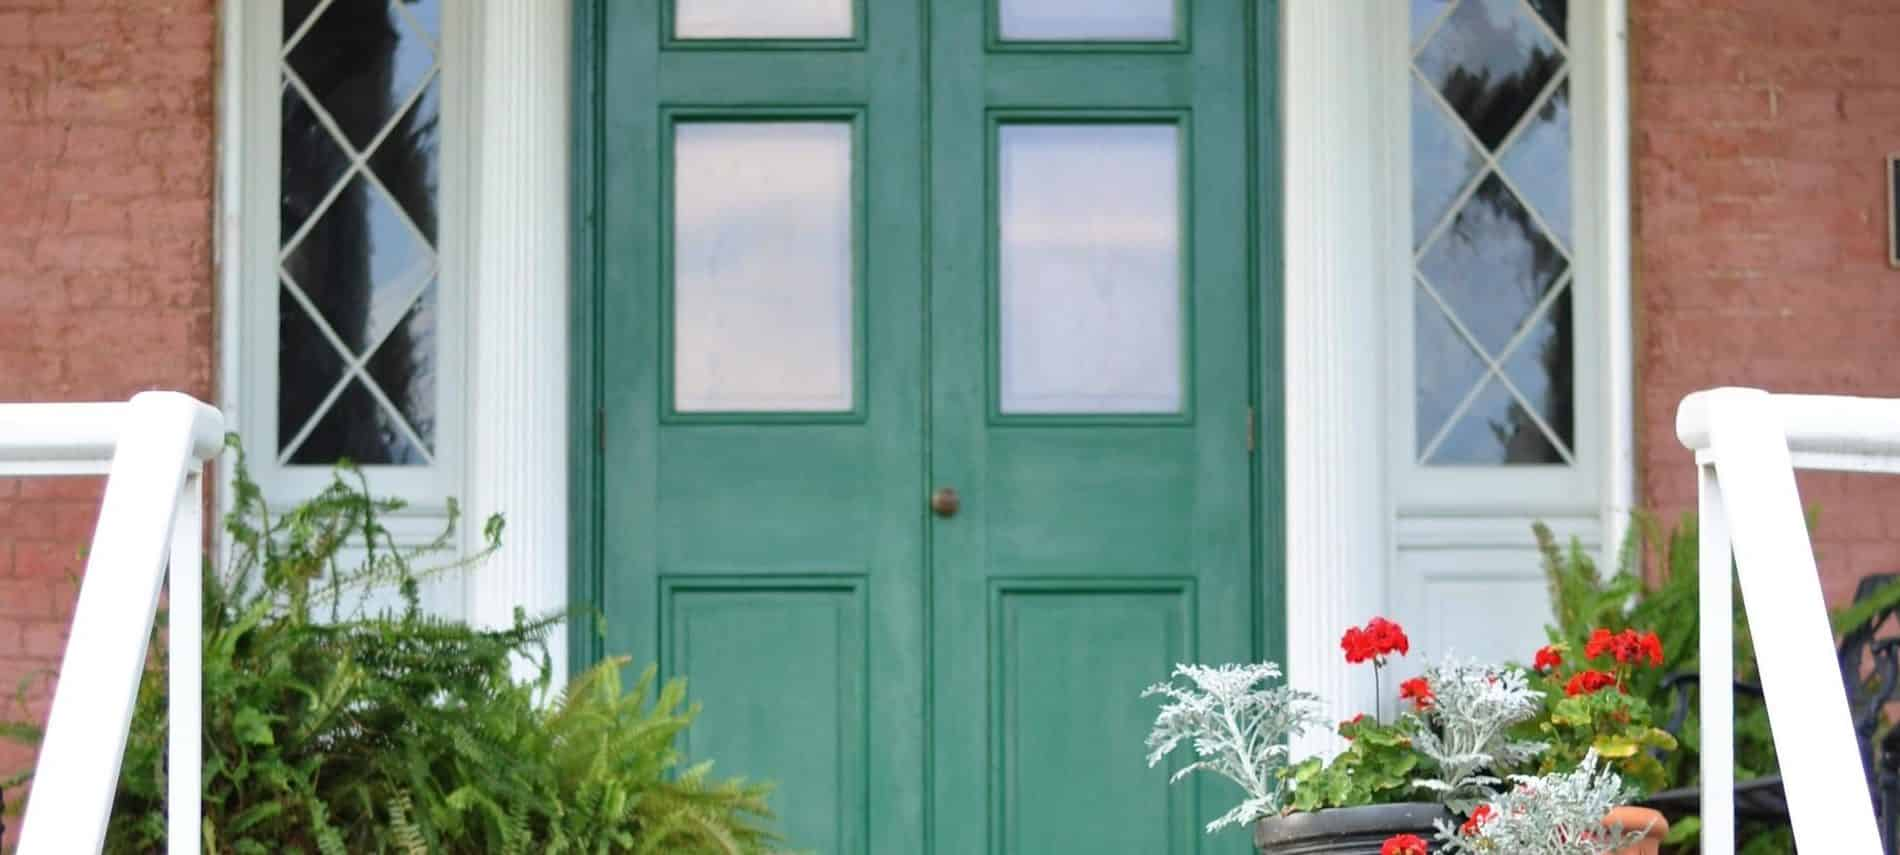 Red brick front porch with green door and white trim and potted plants on stairs